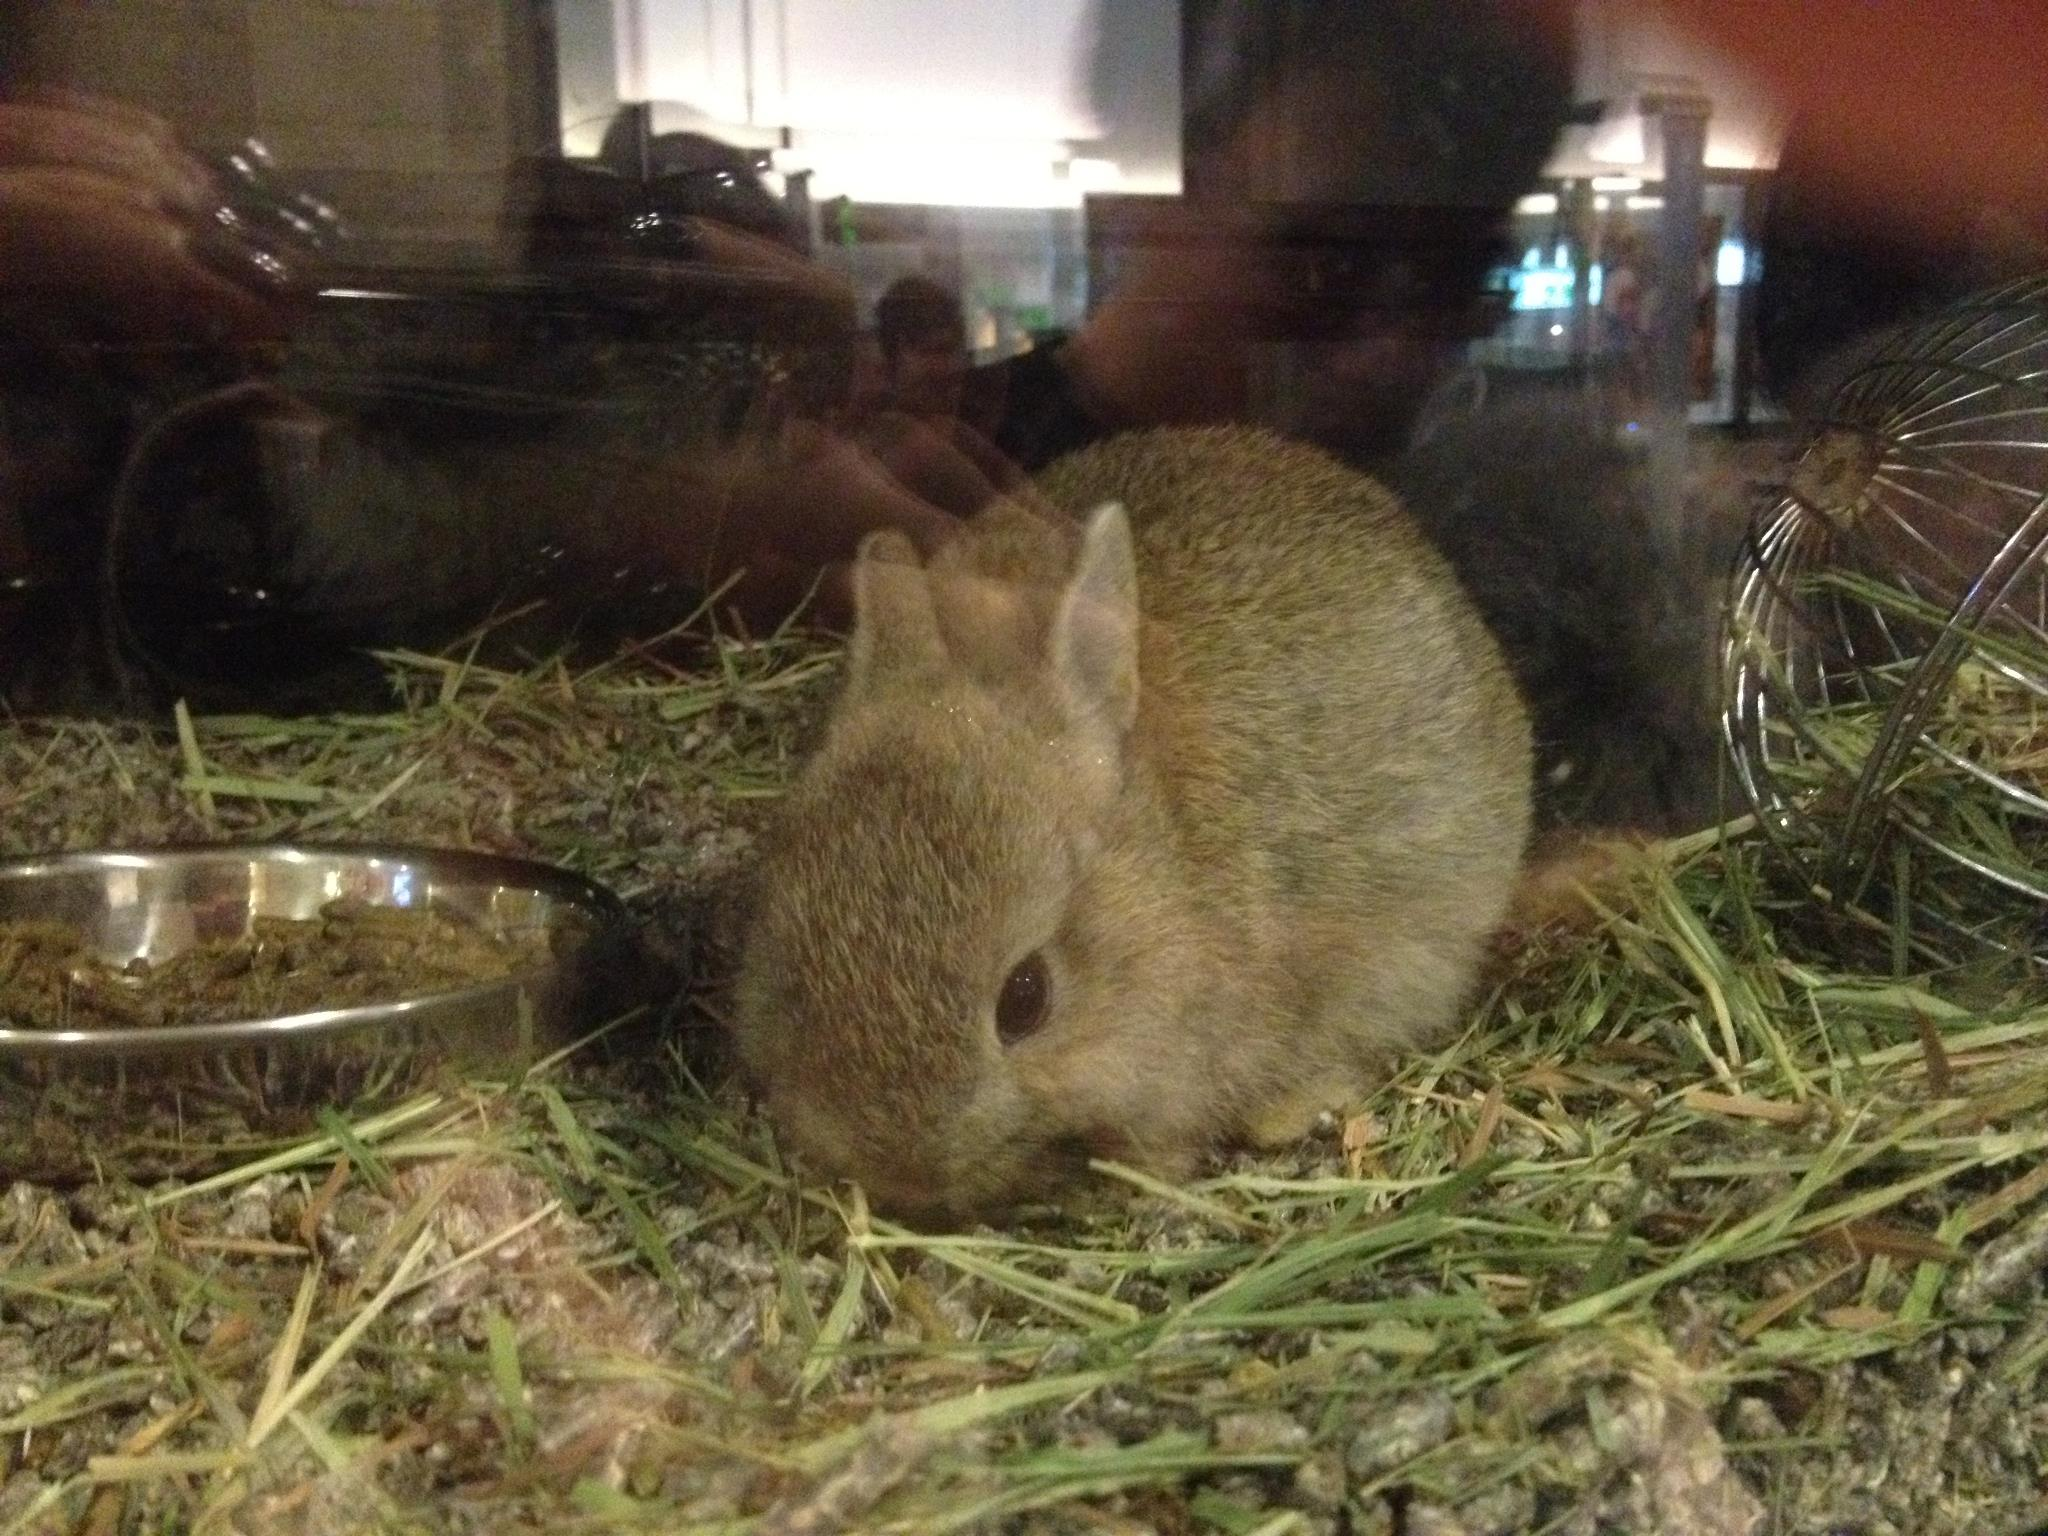 Cute Baby Rabbit!